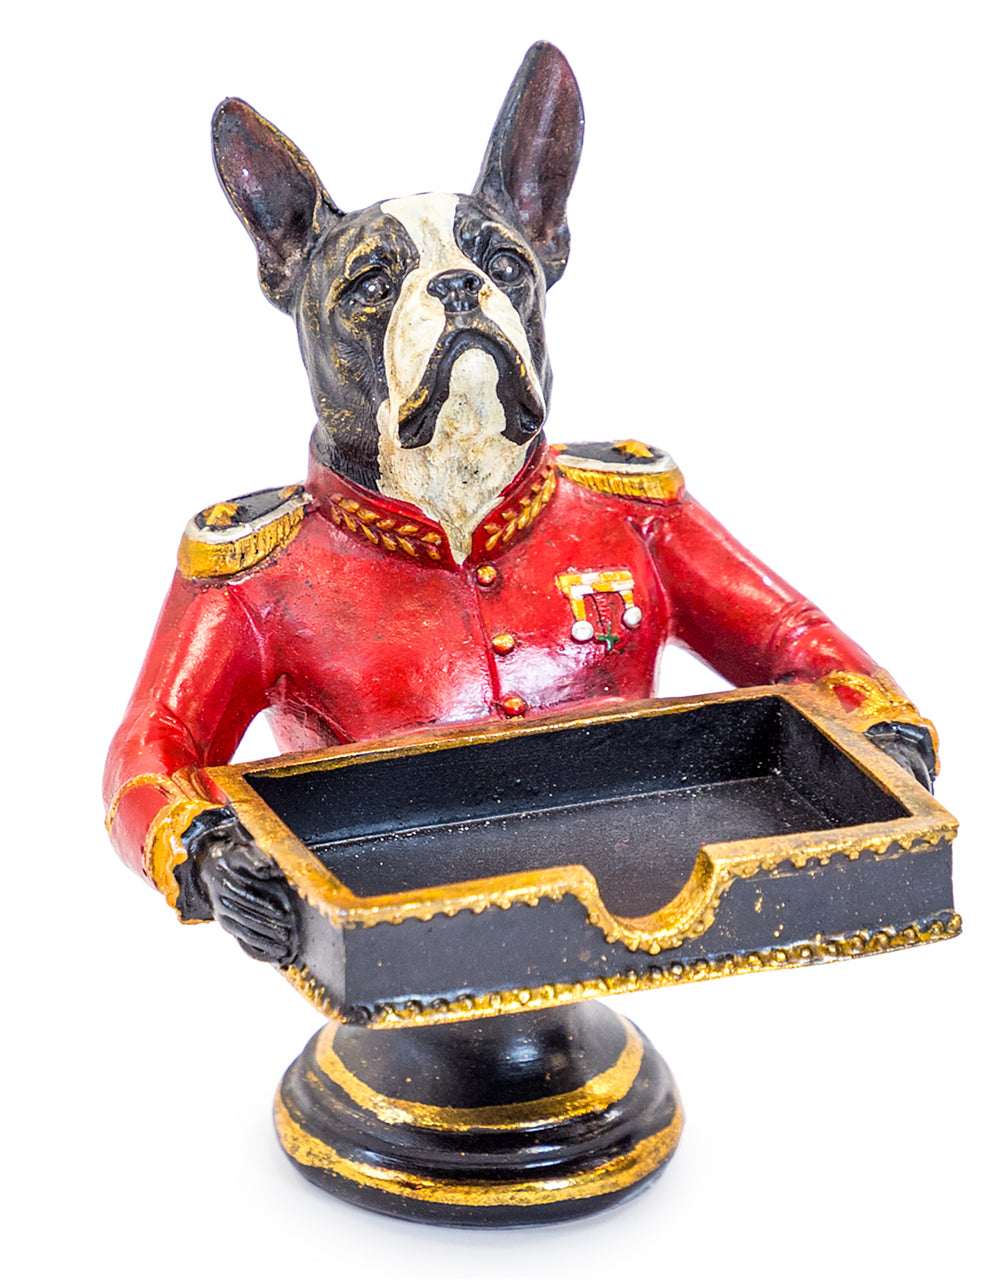 GENTRY FRENCH BULLDOG CARD HOLDER/SWEET TRAY - Wild Atlantic Living